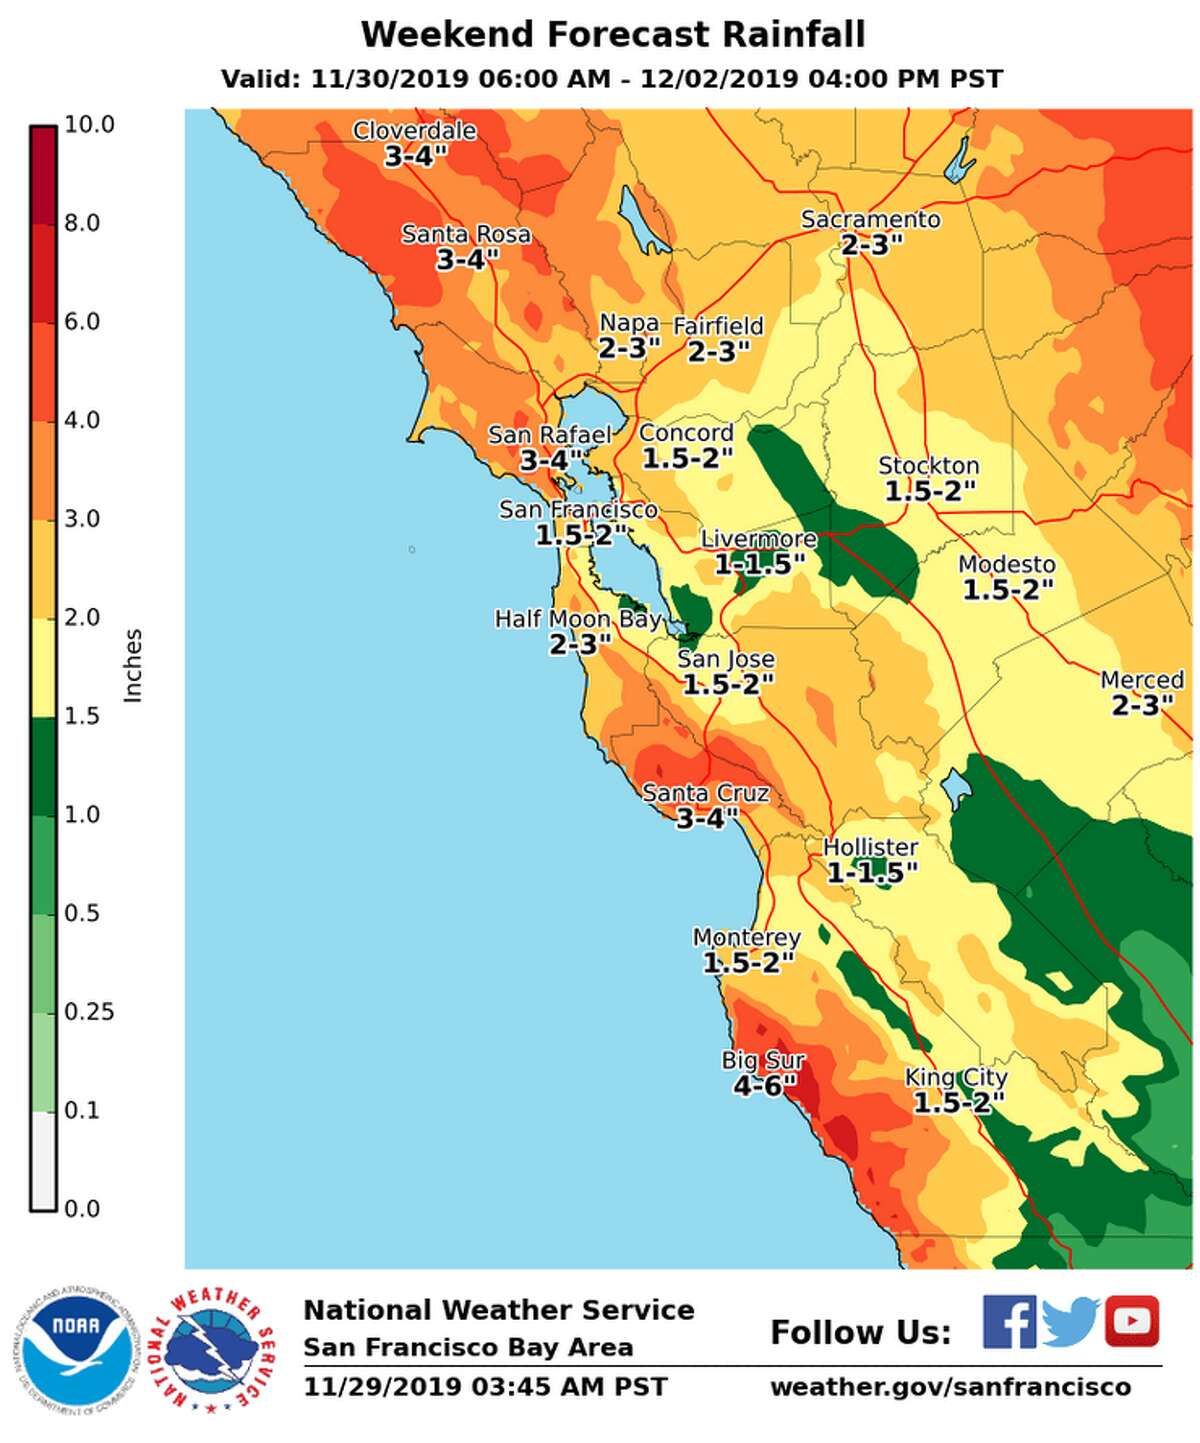 Anywhere between 2-6 inches is expected to fall in the Bay Area by Monday.